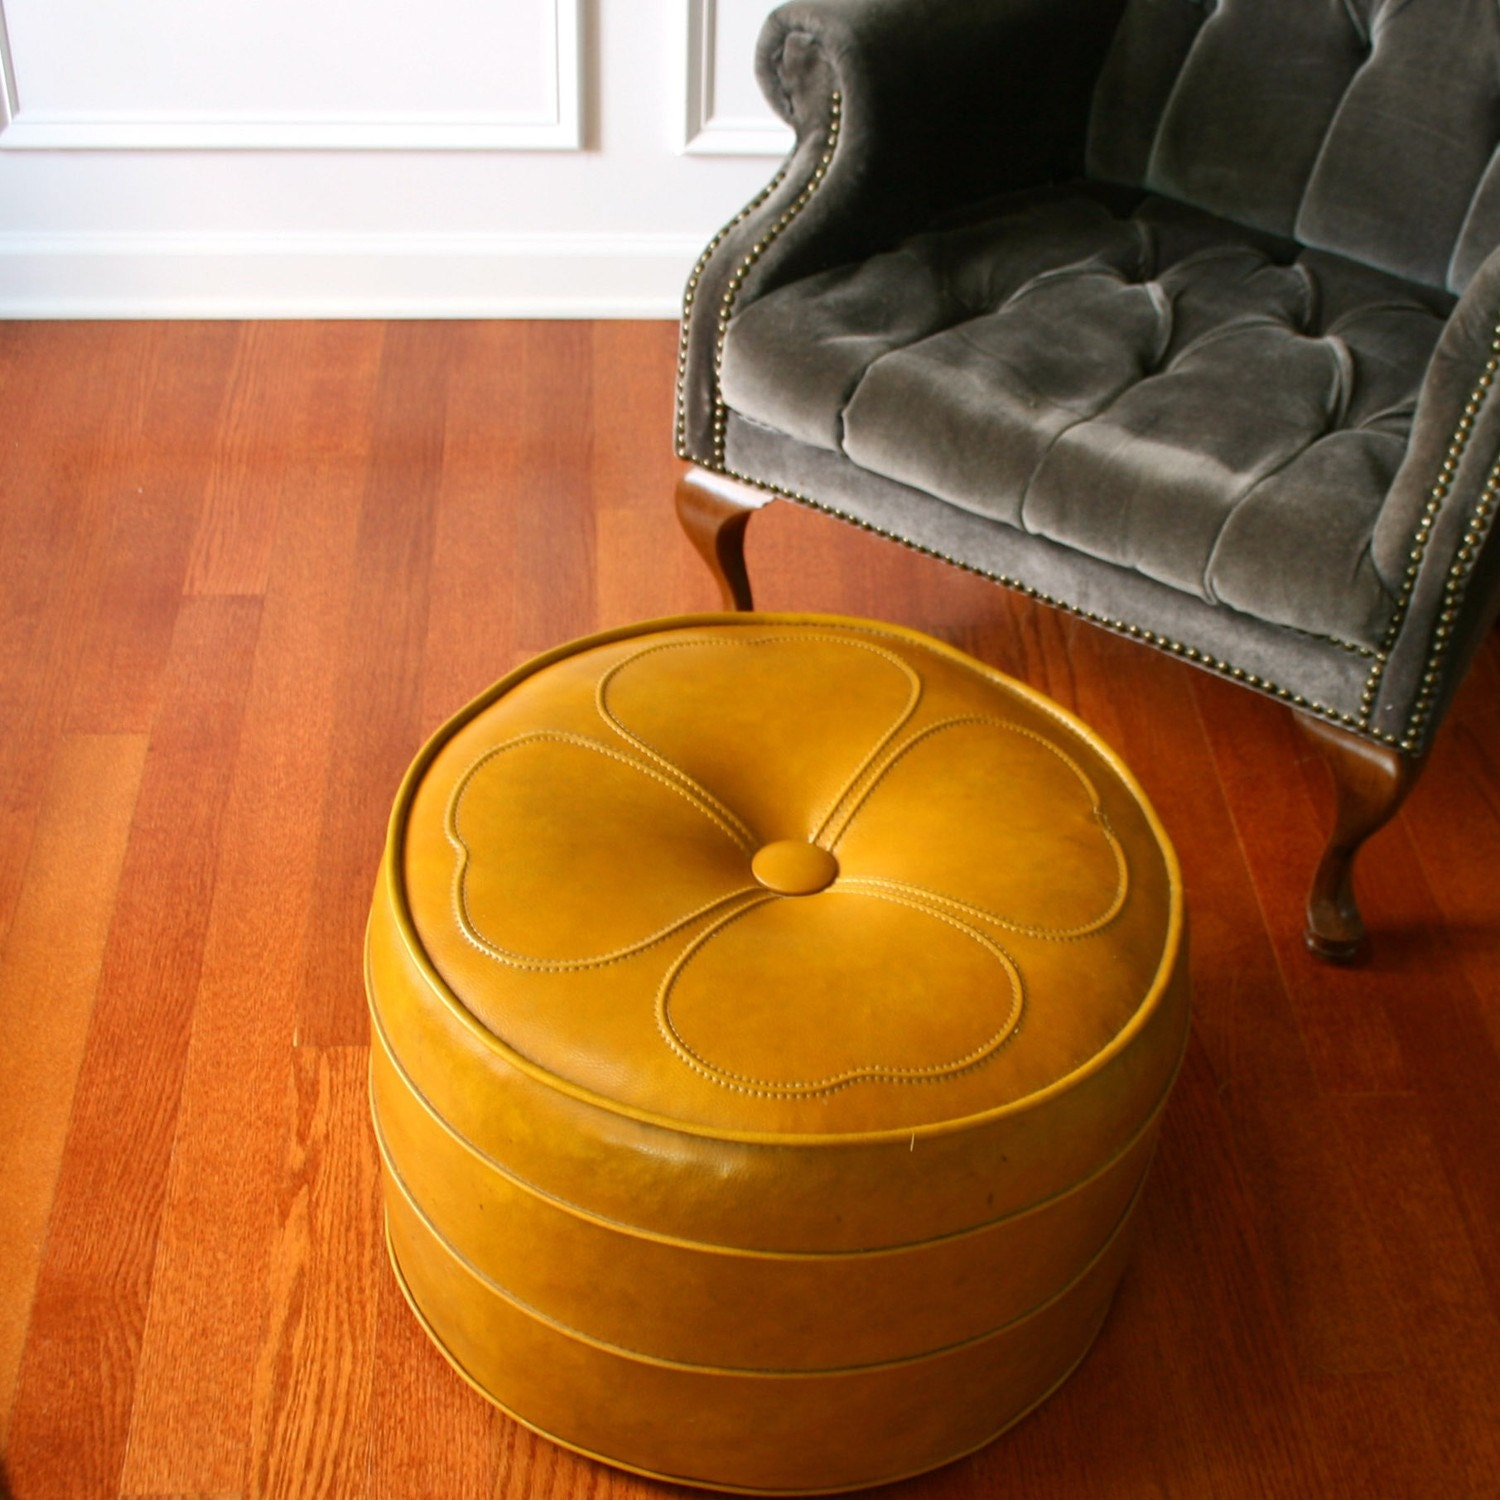 Vintage Ottoman Hassock Mustard Yellow Gold Mid Centruy : ilfullxfull182302849 from www.etsy.com size 1500 x 1500 jpeg 308kB